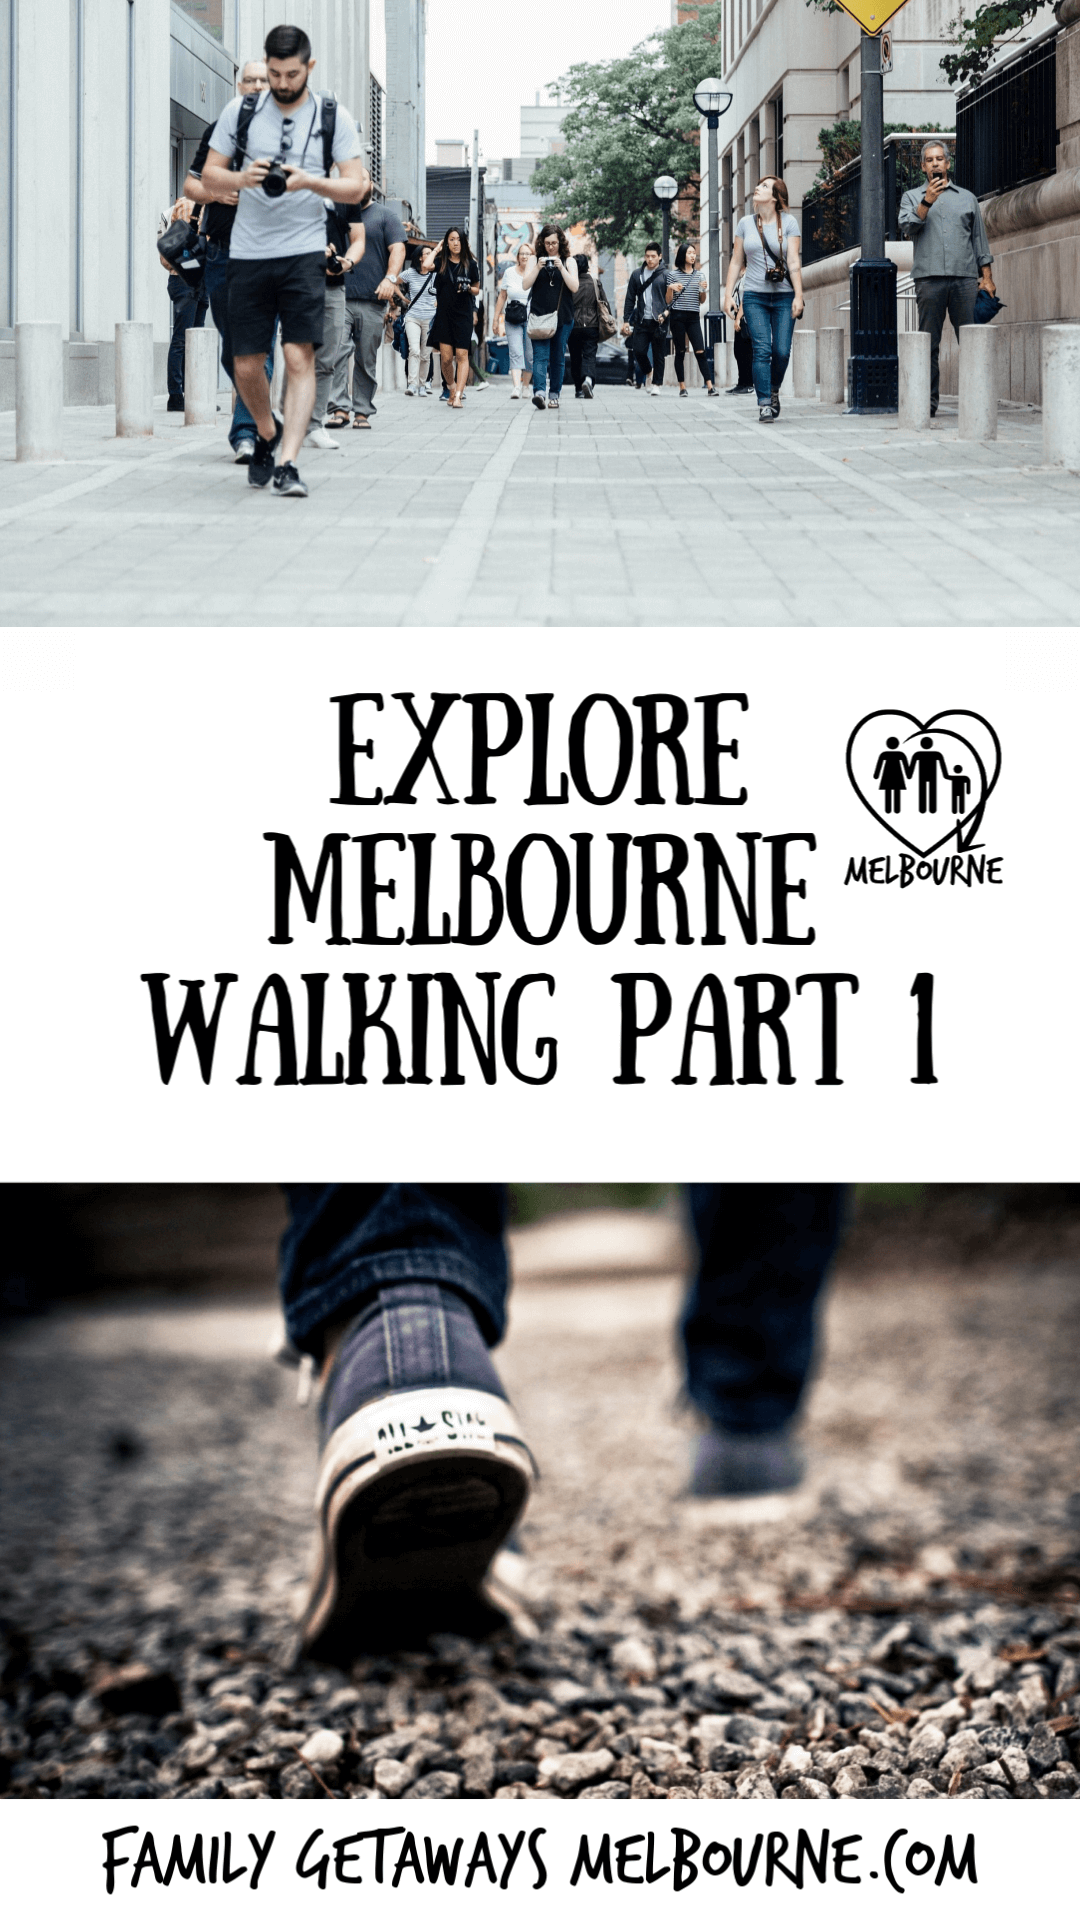 image to pin to Pinterest for walking melbourne part 1 of the 2 part section on exploring Melbourne, Australia